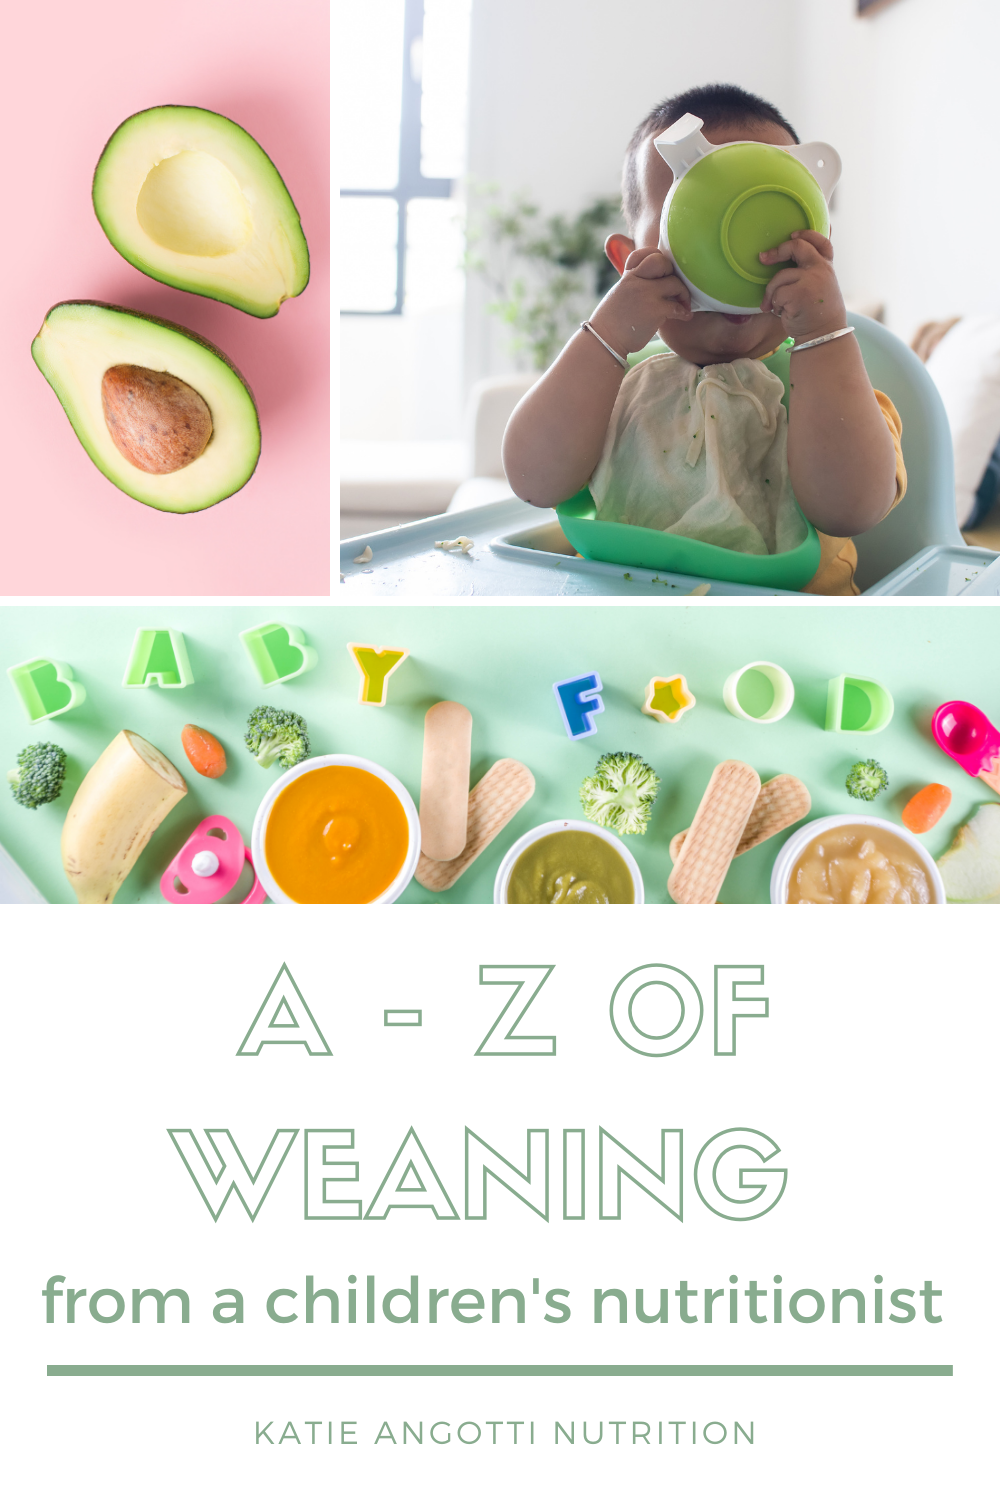 Baby weaning eating food from bowl, jars of baby food and finger foods, avocado